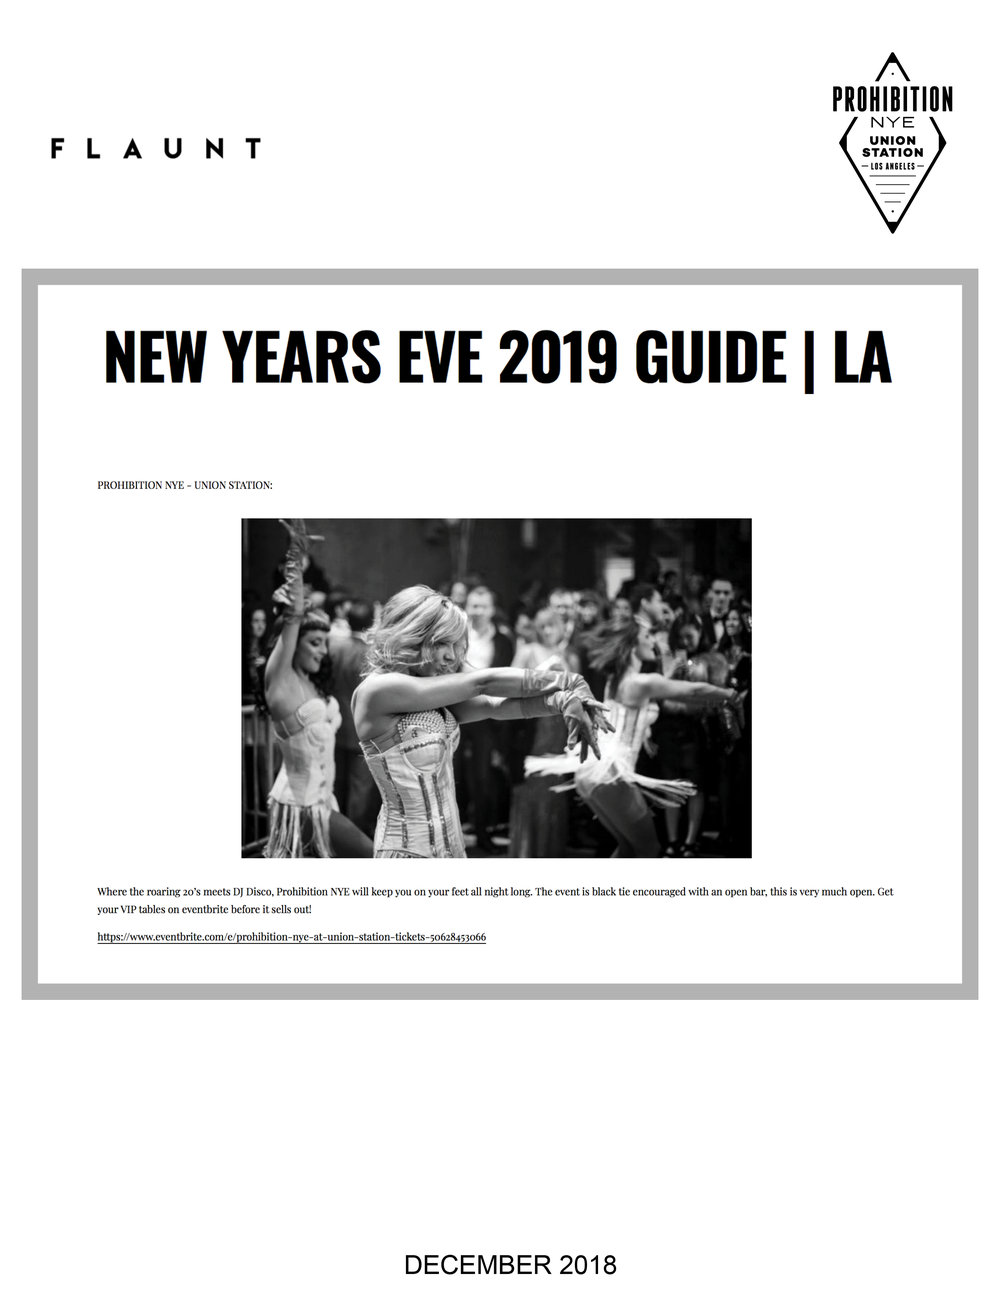 ProhibitionNYE_FlauntMagazine_December2018.jpg